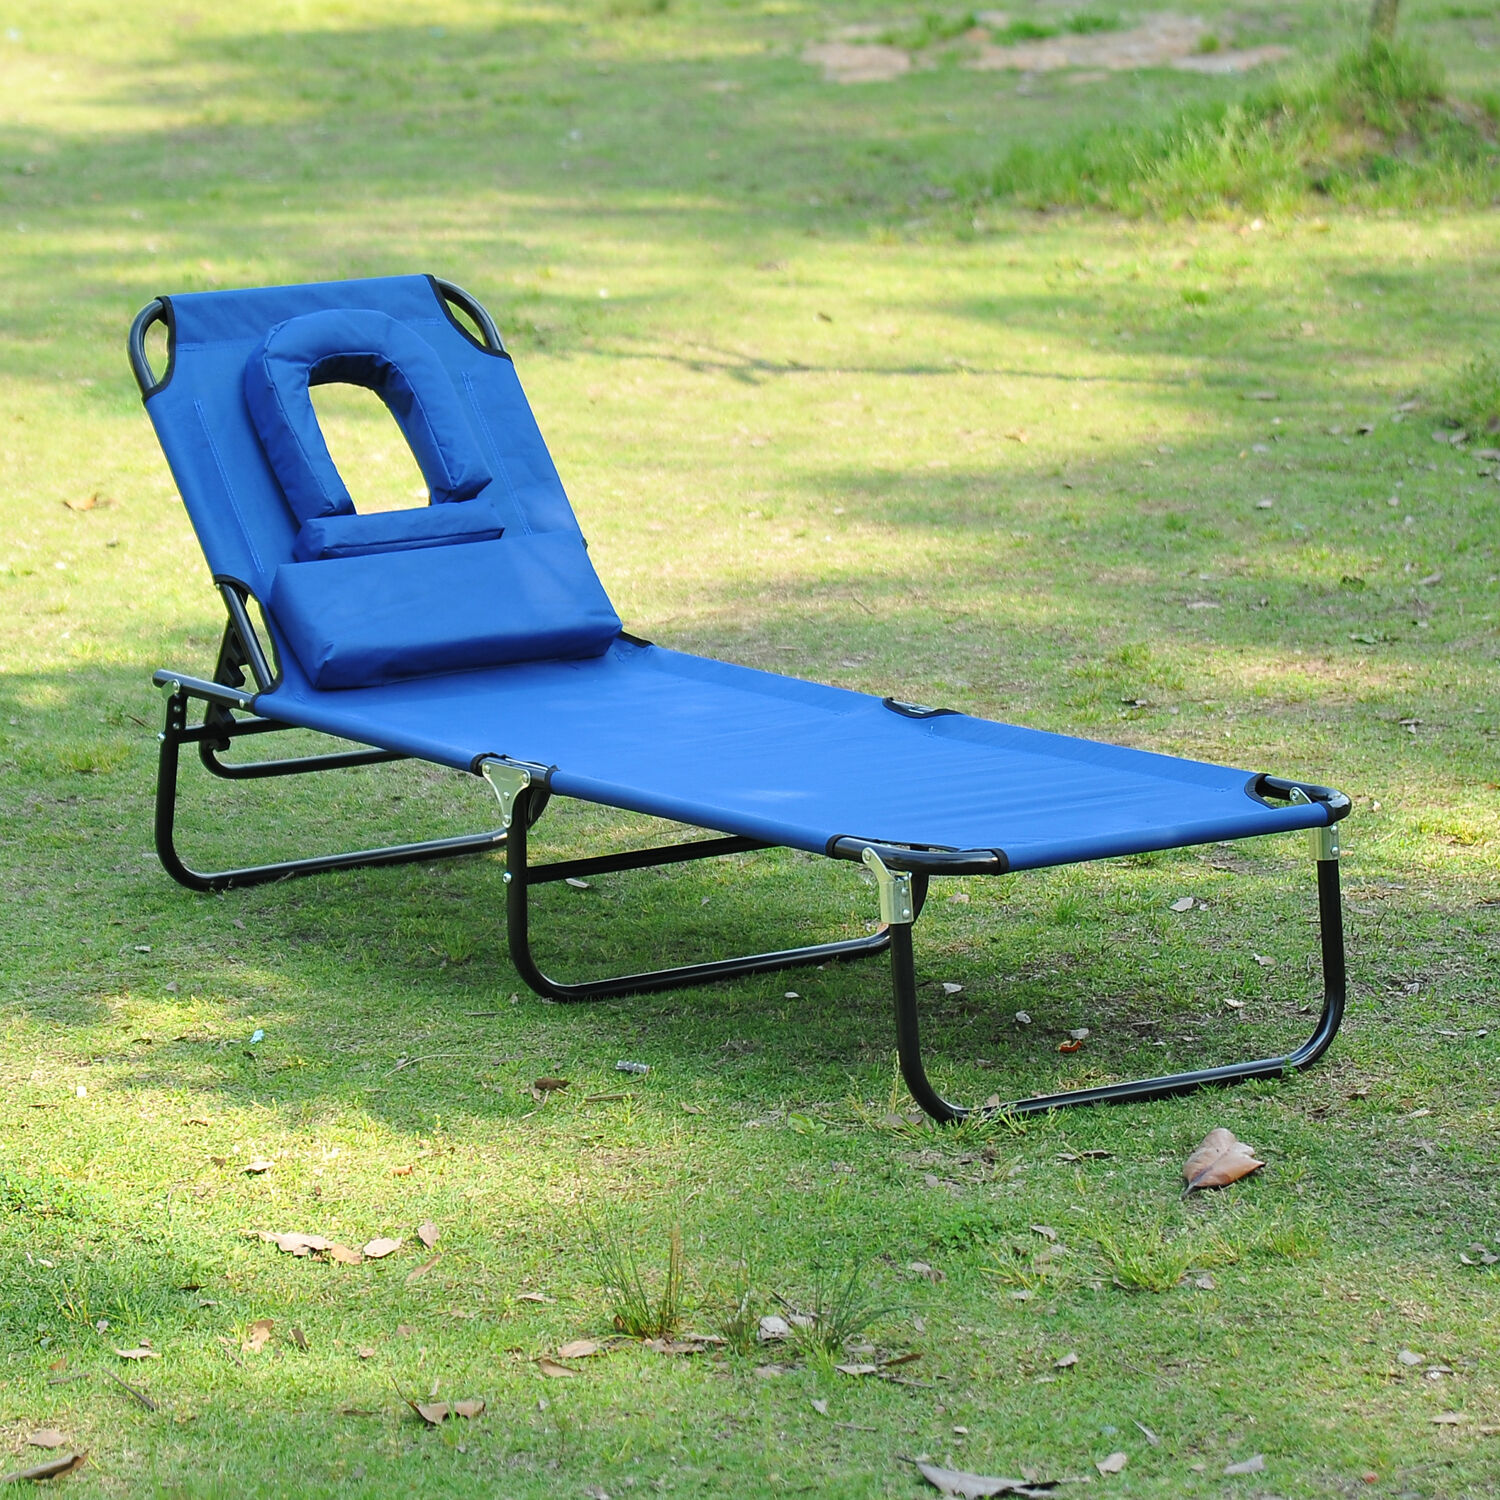 Outdoor Lounge Chair Portable Folding Garden Sun Lounger Patio Pool Beach Blue